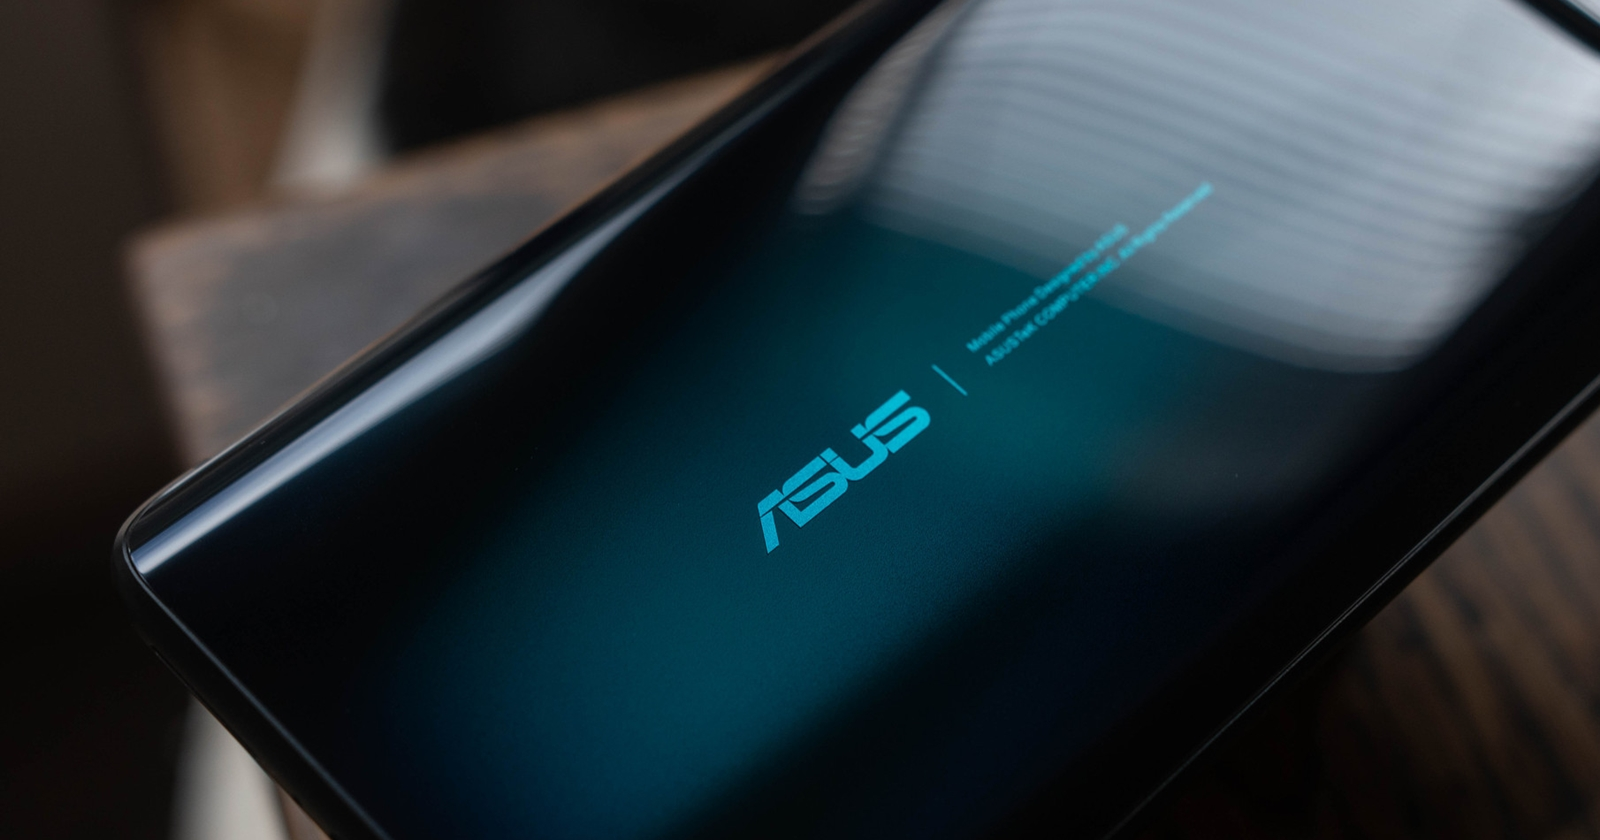 ASUS Zenfone 8/8 Mini shows in detailed renders before launch;  Specifications have also been confirmed